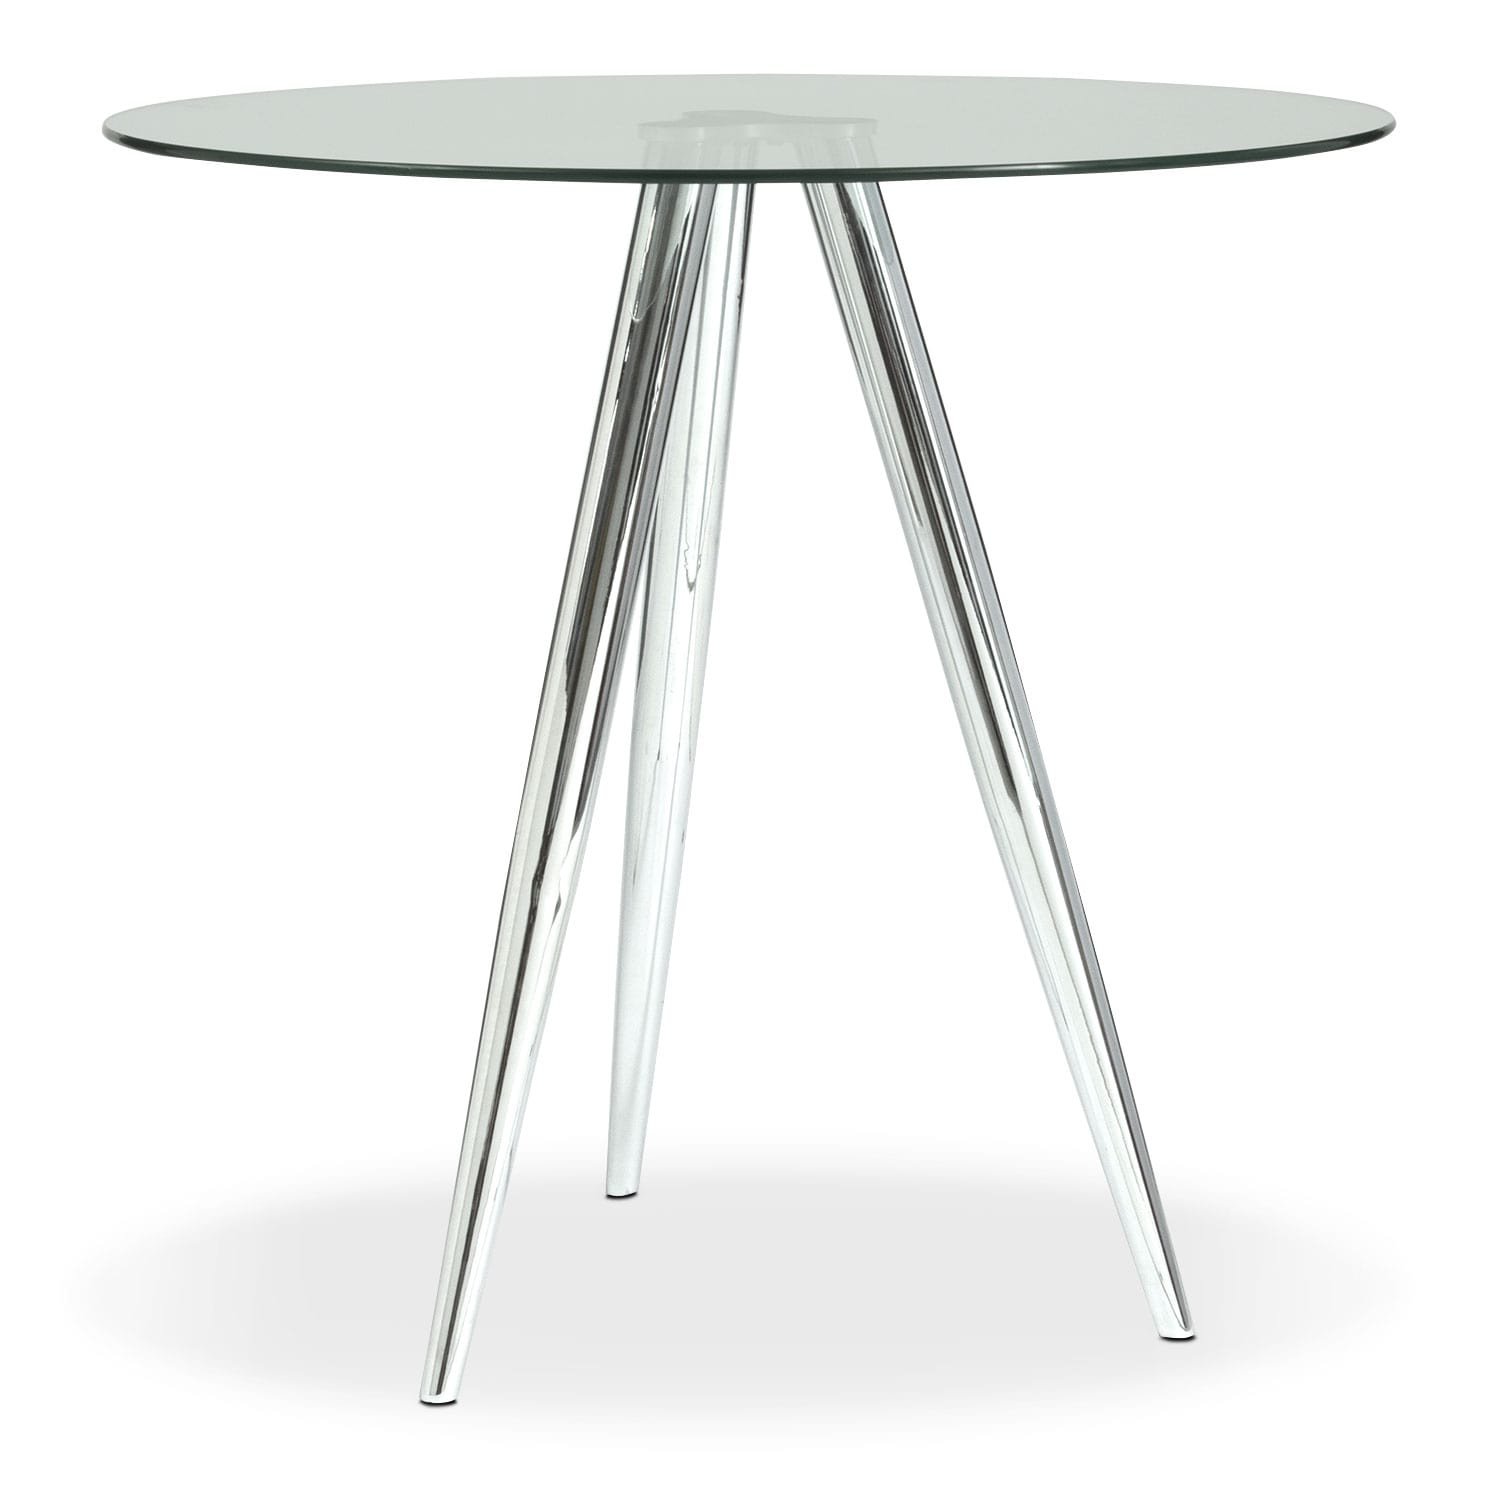 [Metropolitan Bistro Table - Chrome]